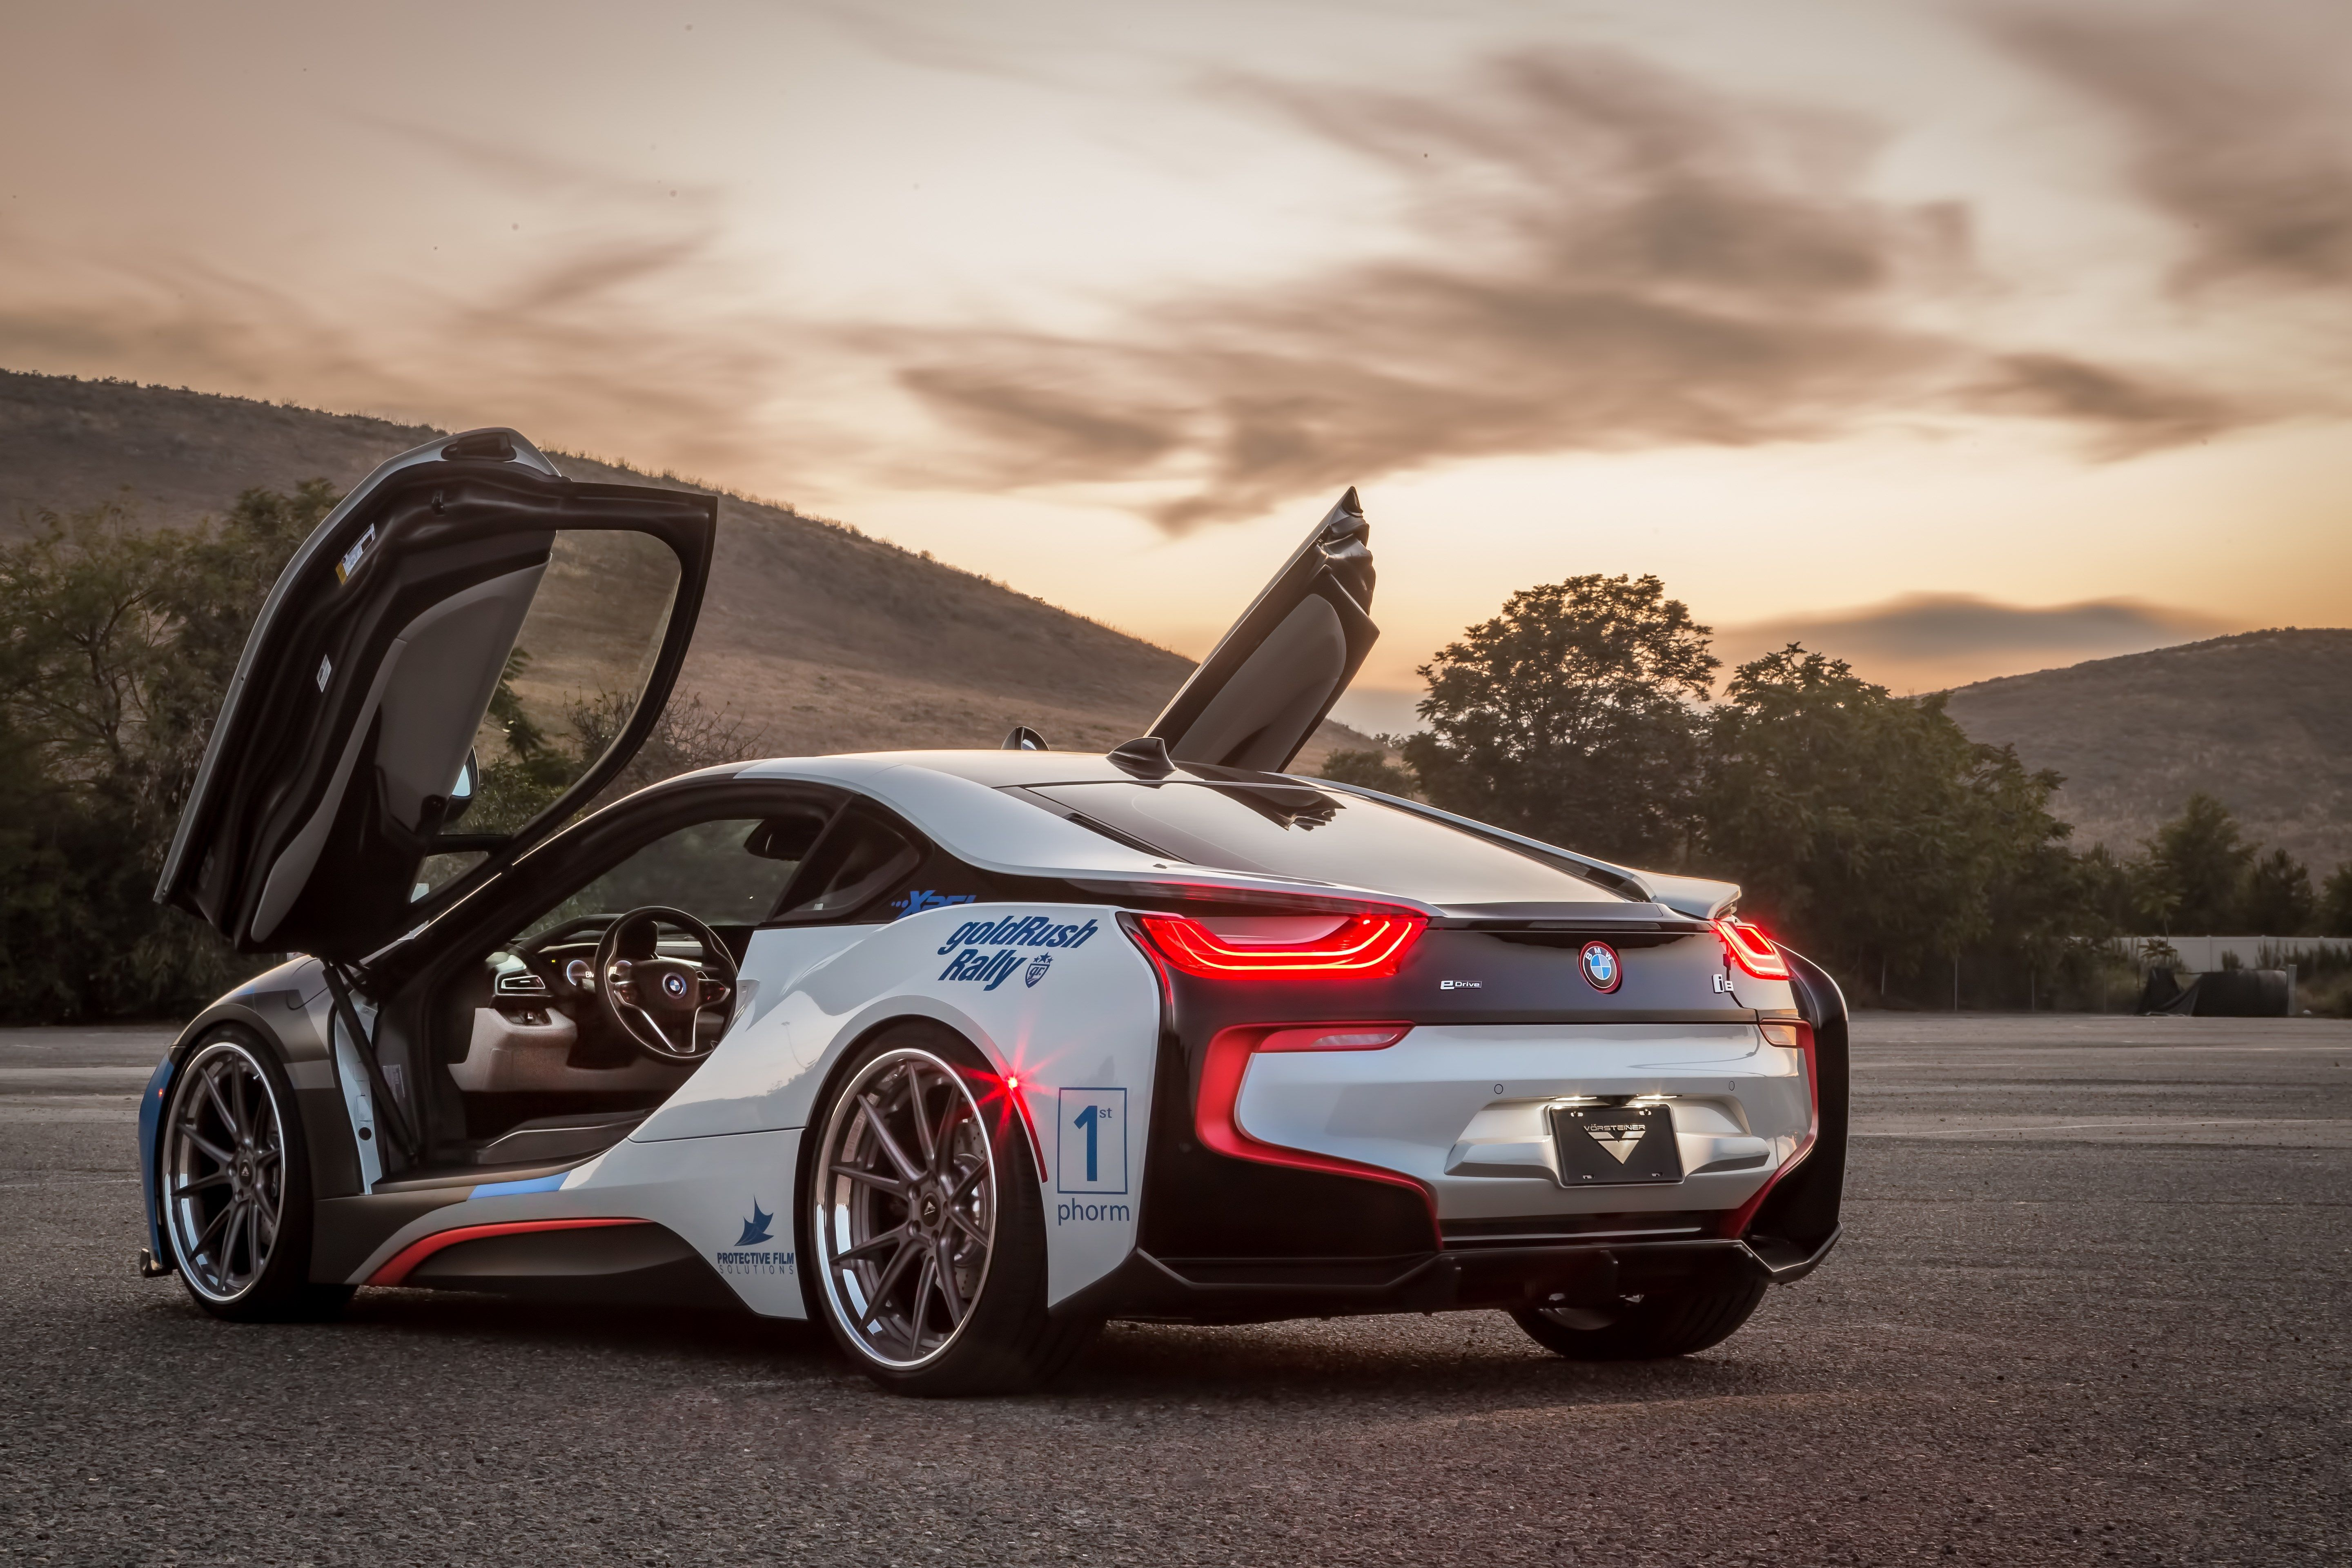 5760x3840 Px Free Download Pictures Of Bmw I8 By Damari Turner For Pkf Bmw I8 Bmw I8 Wallpapers Bmw I